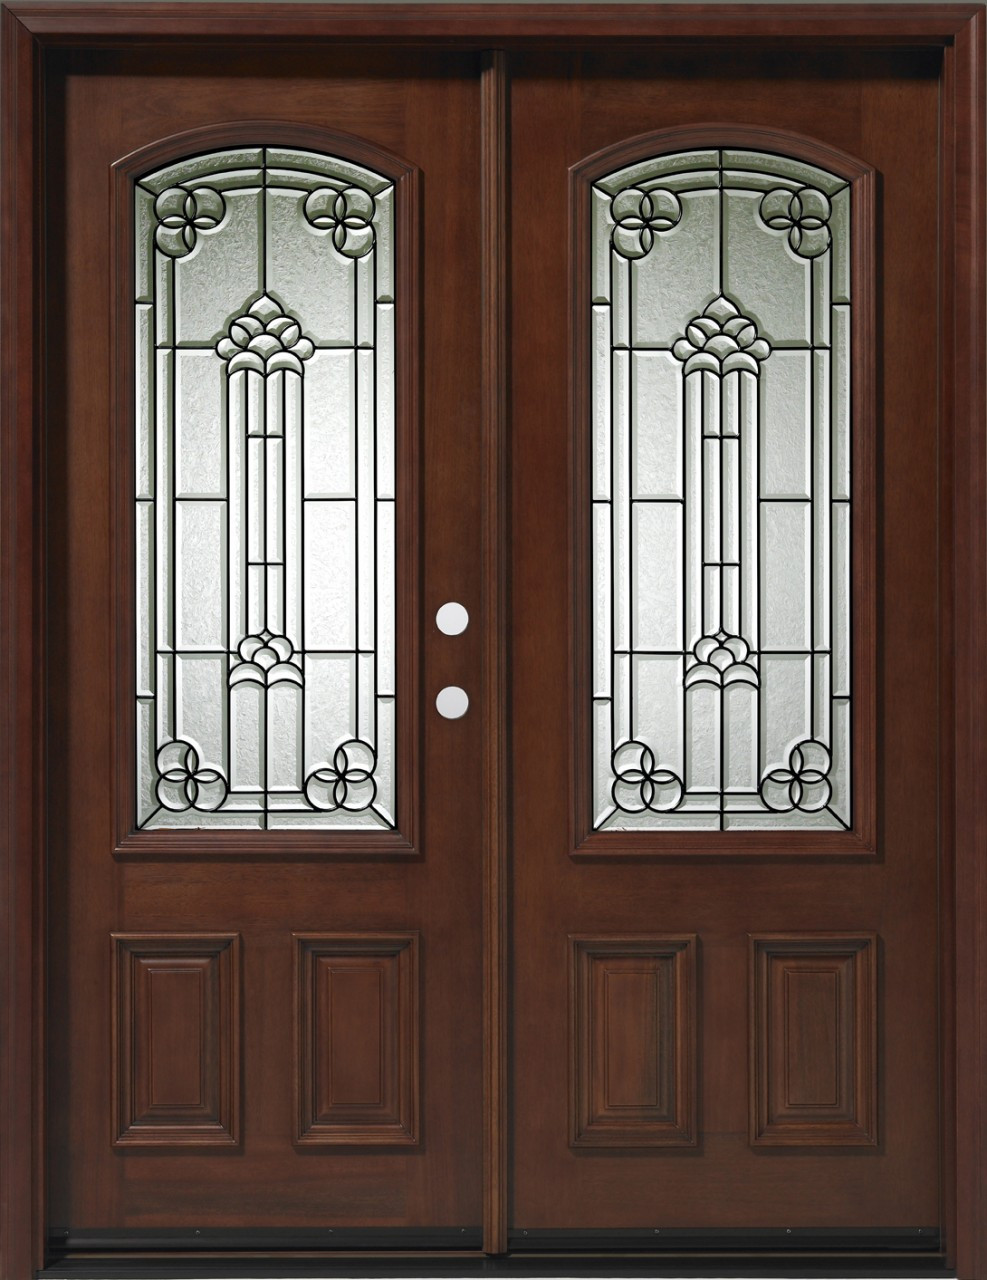 Discount Door Center Prehung And Prefinished 3 4 Lite Arched Double Entry Door